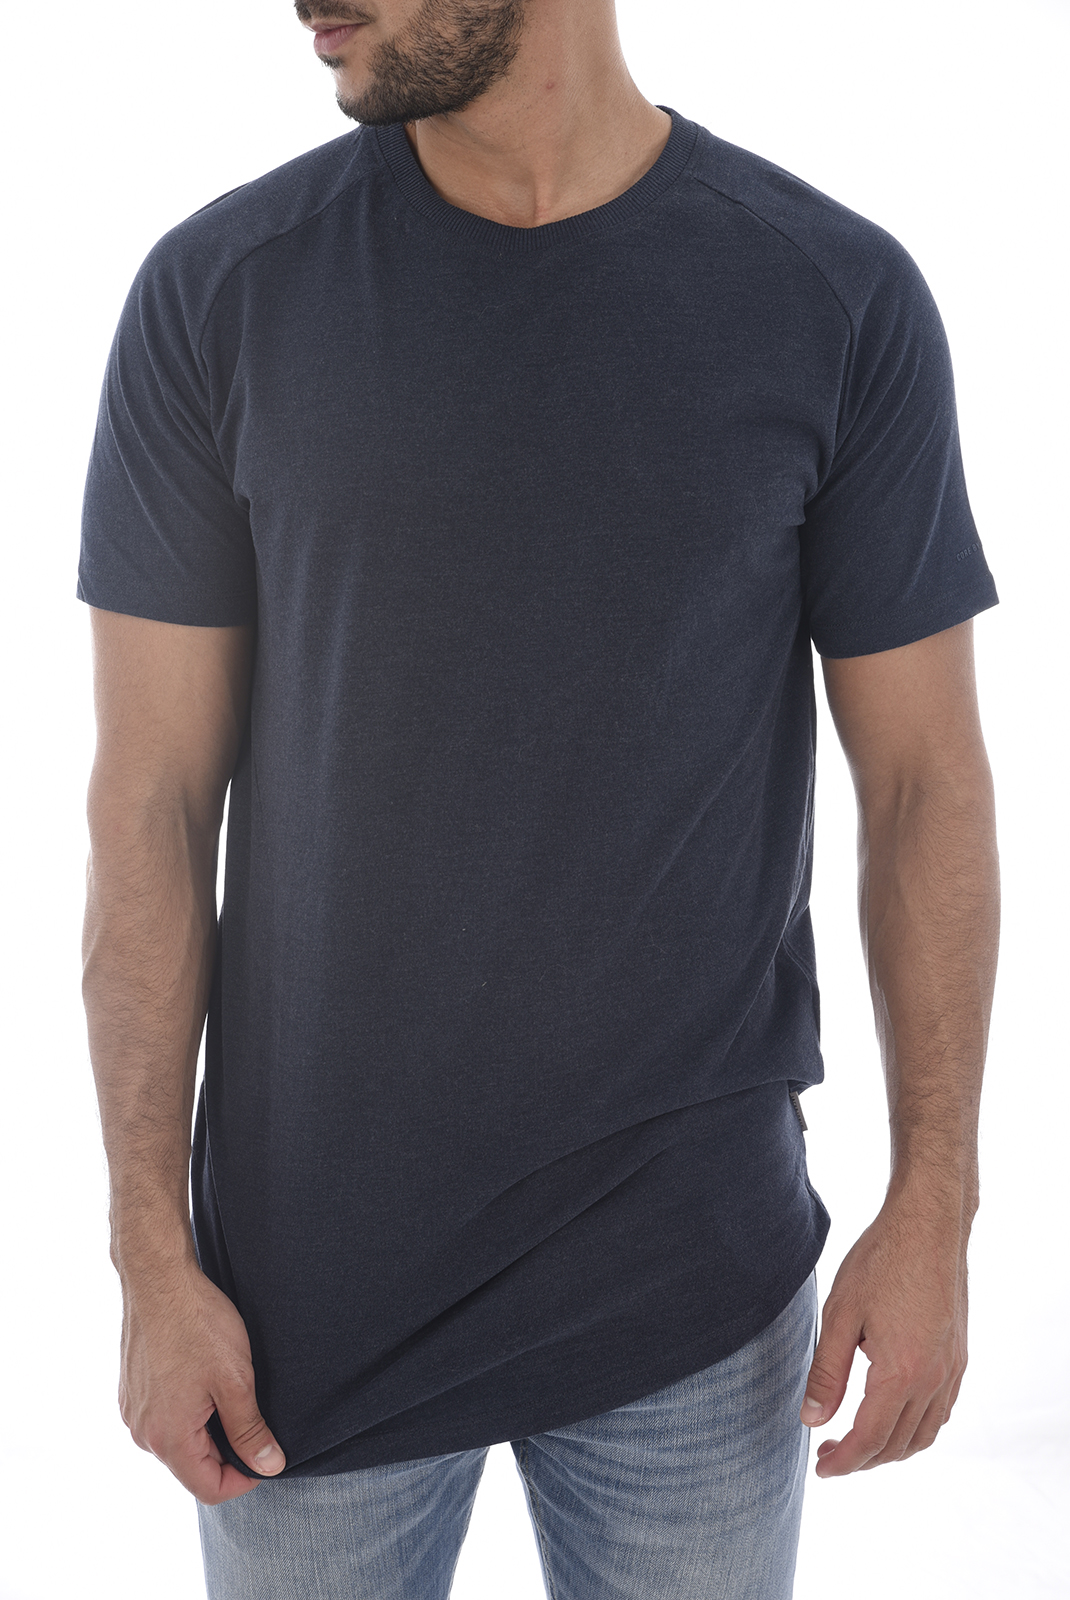 Tee-shirts  Jack & Jones RAFE TEE SKY CAPTAIN